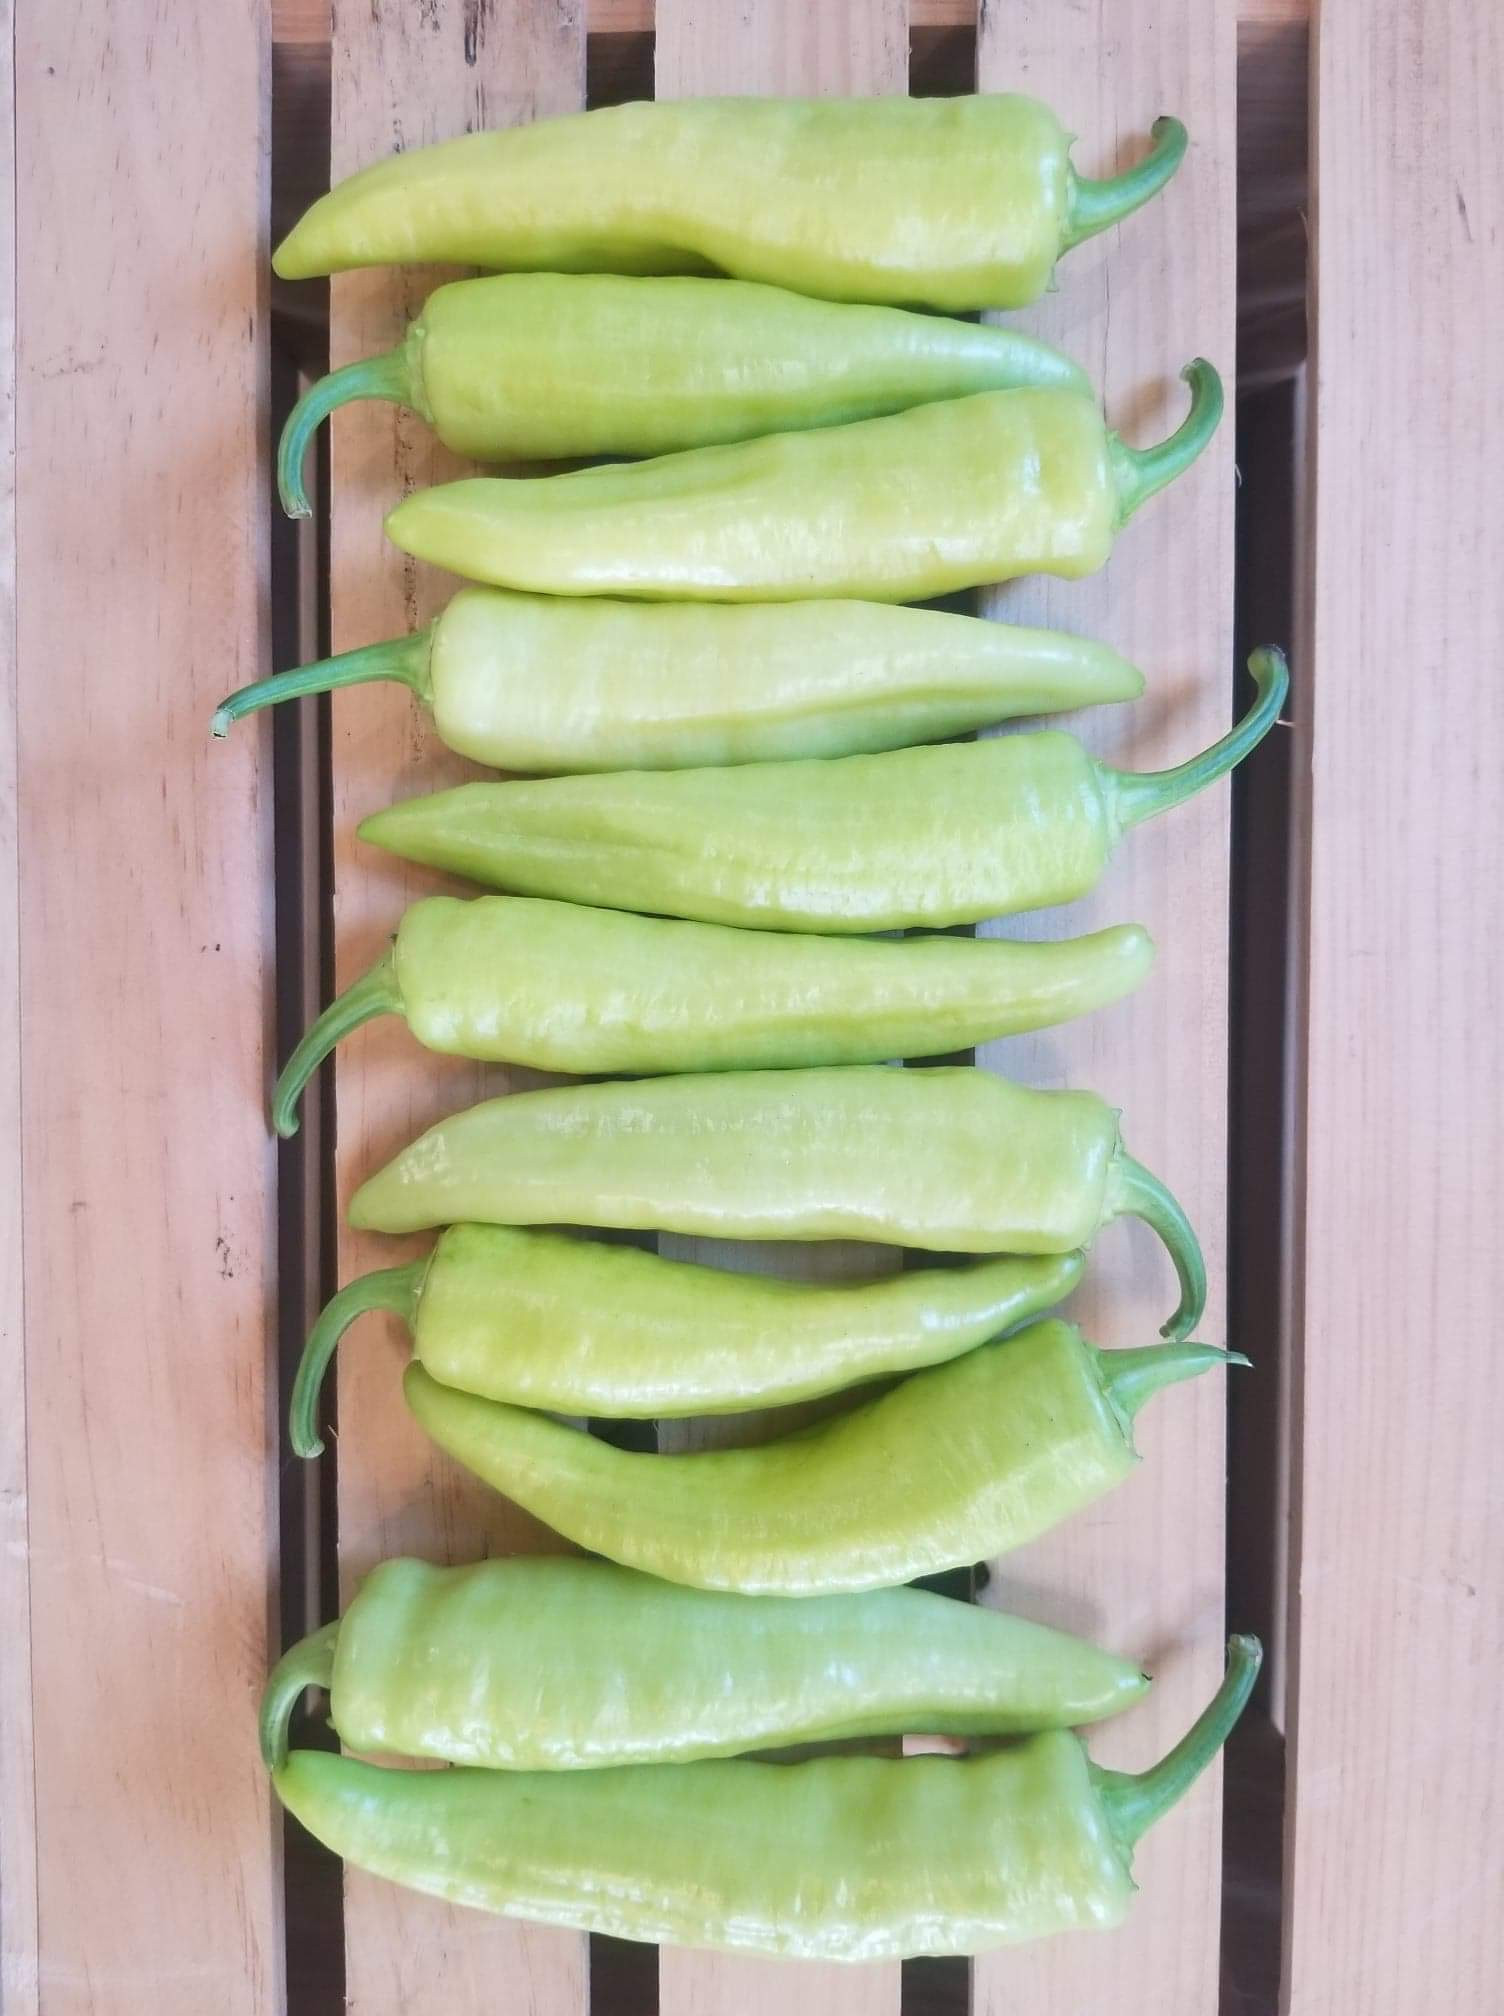 Sweet Banana Peppers (1 lb)